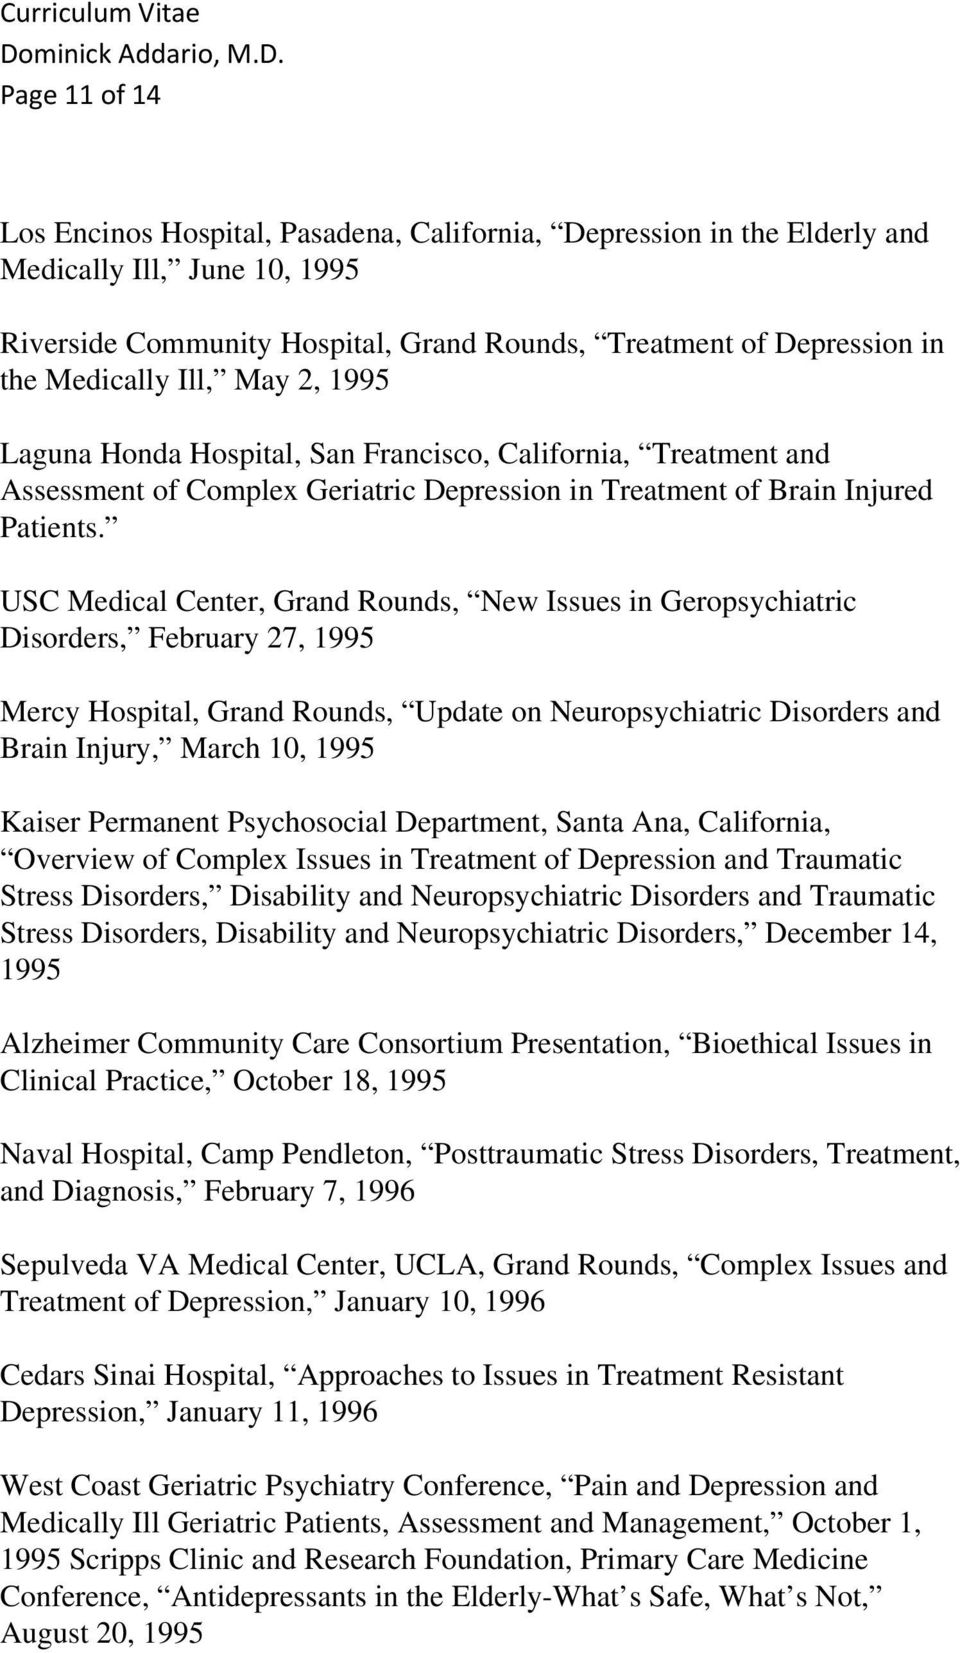 USC Medical Center, Grand Rounds, New Issues in Geropsychiatric Disorders, February 27, 1995 Mercy Hospital, Grand Rounds, Update on Neuropsychiatric Disorders and Brain Injury, March 10, 1995 Kaiser